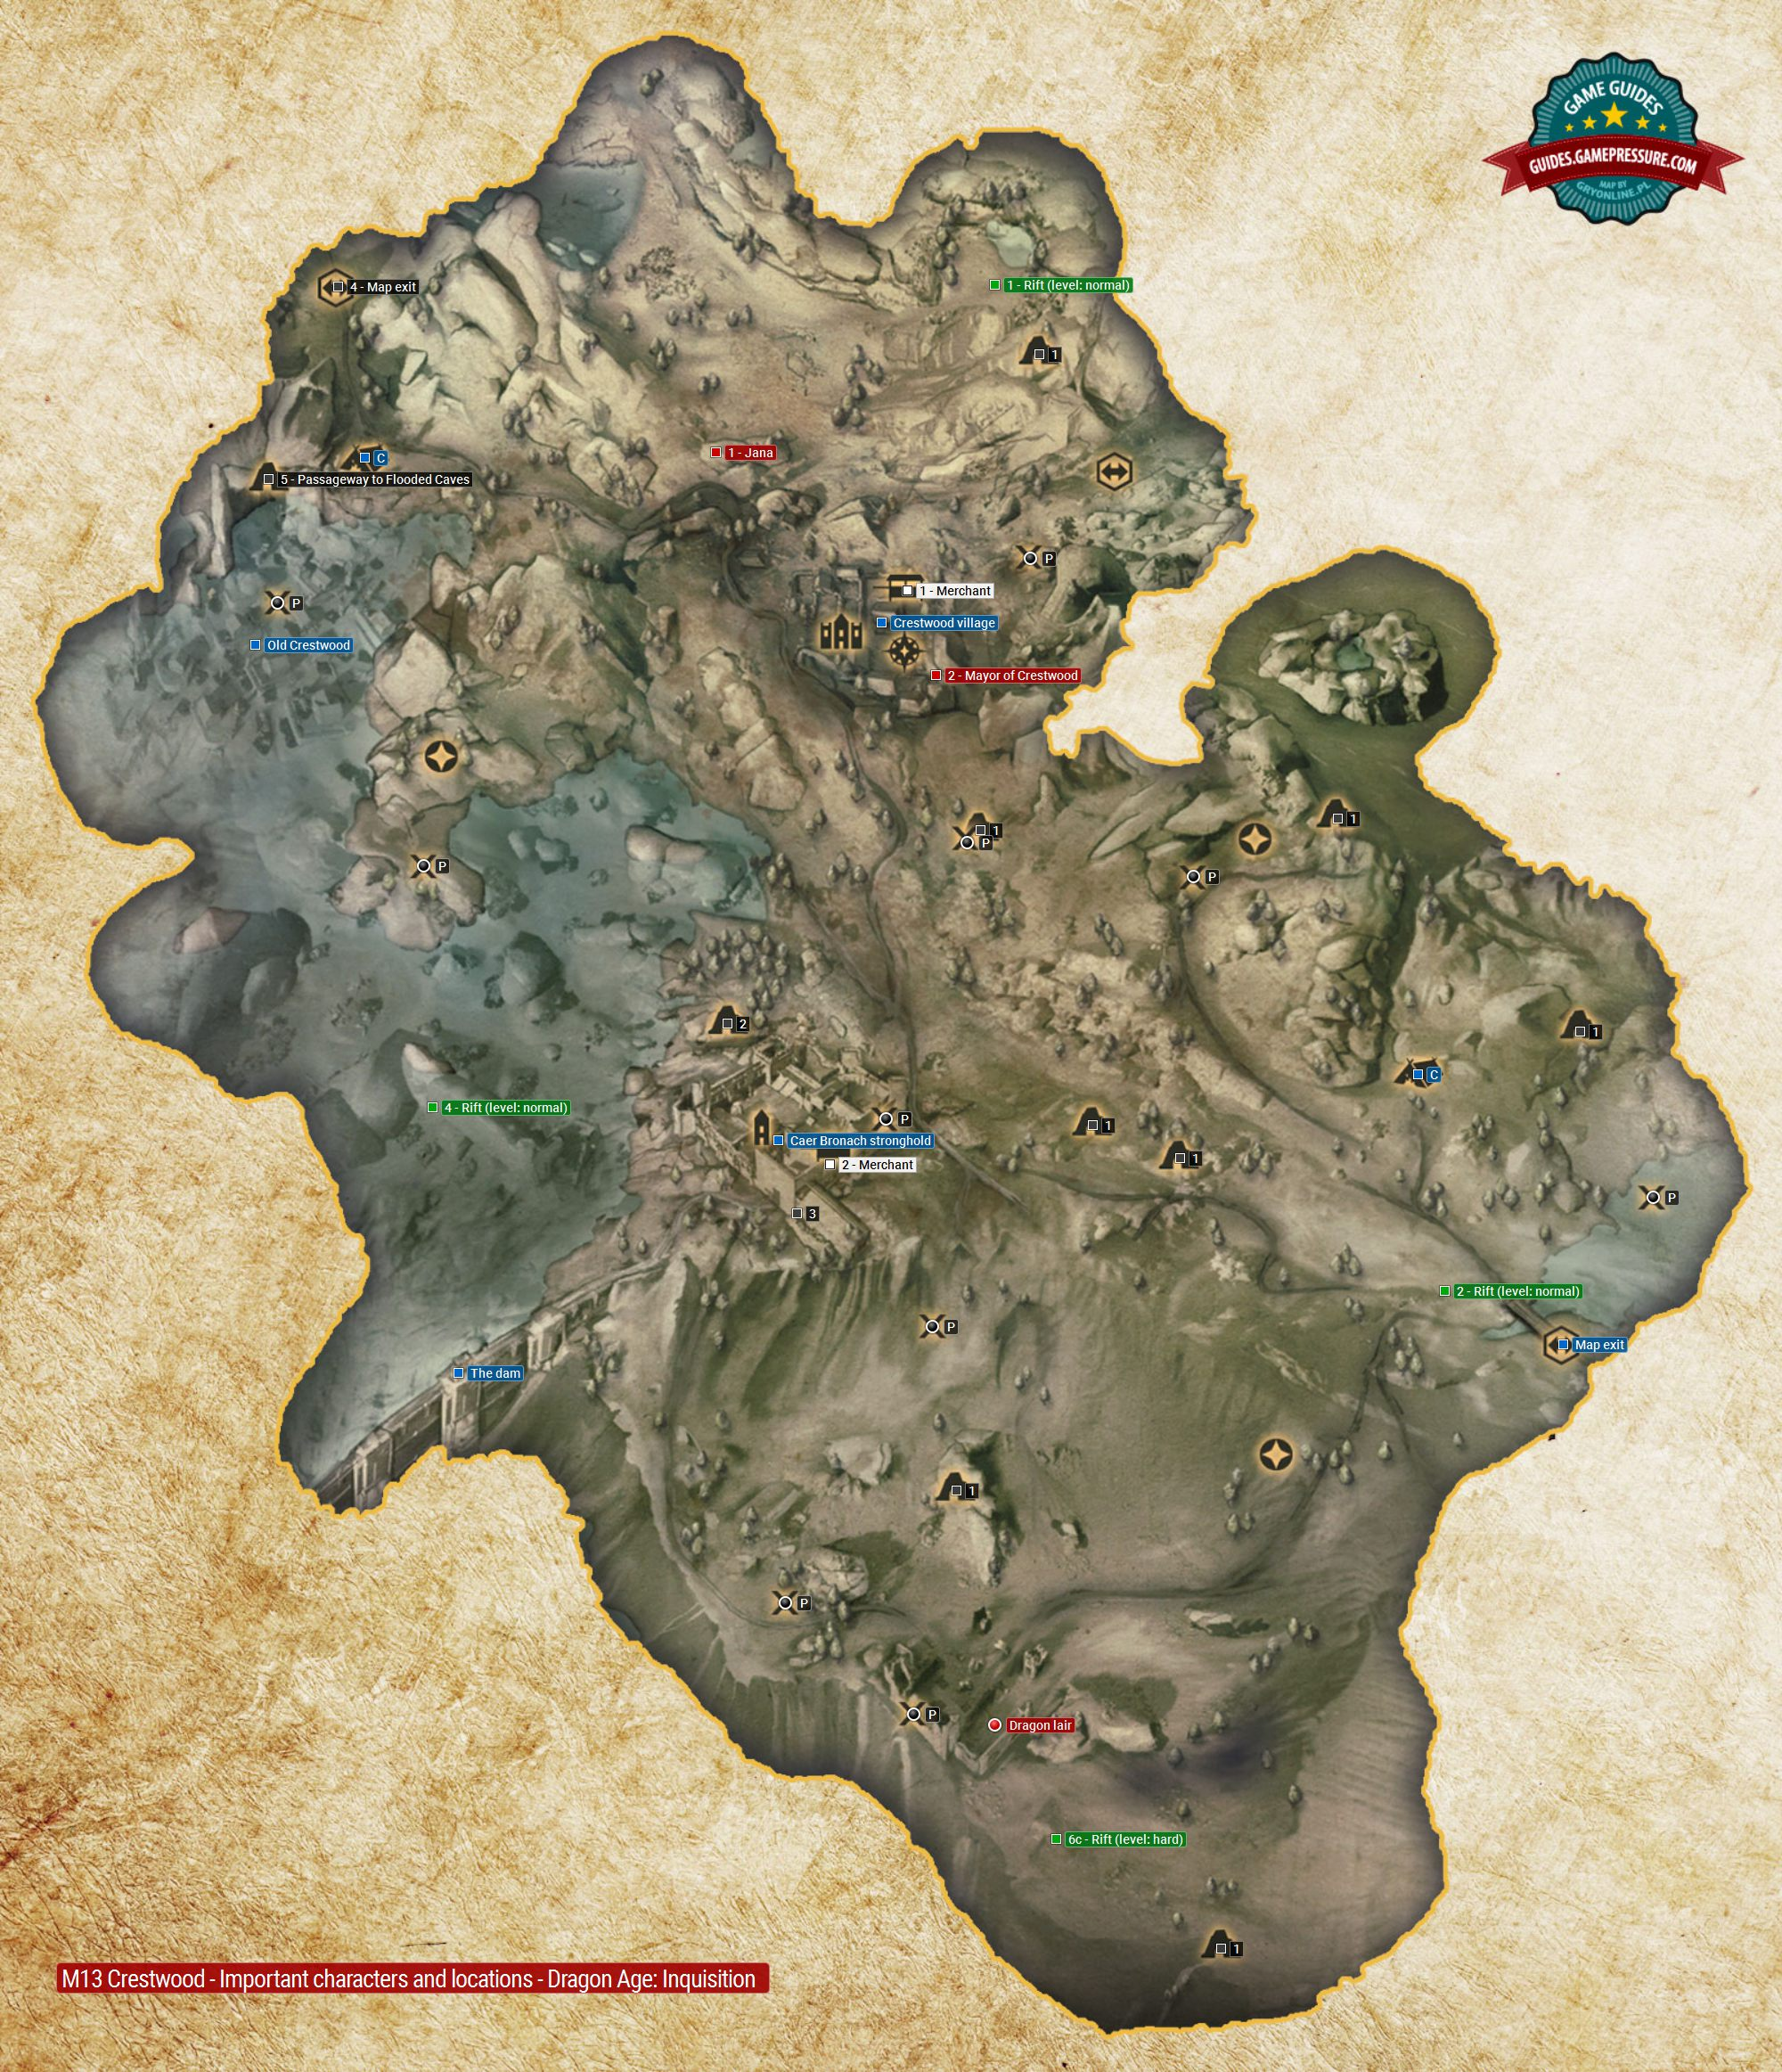 M13 Crestwood - Important characters and locations - Dragon Age: Inquisition